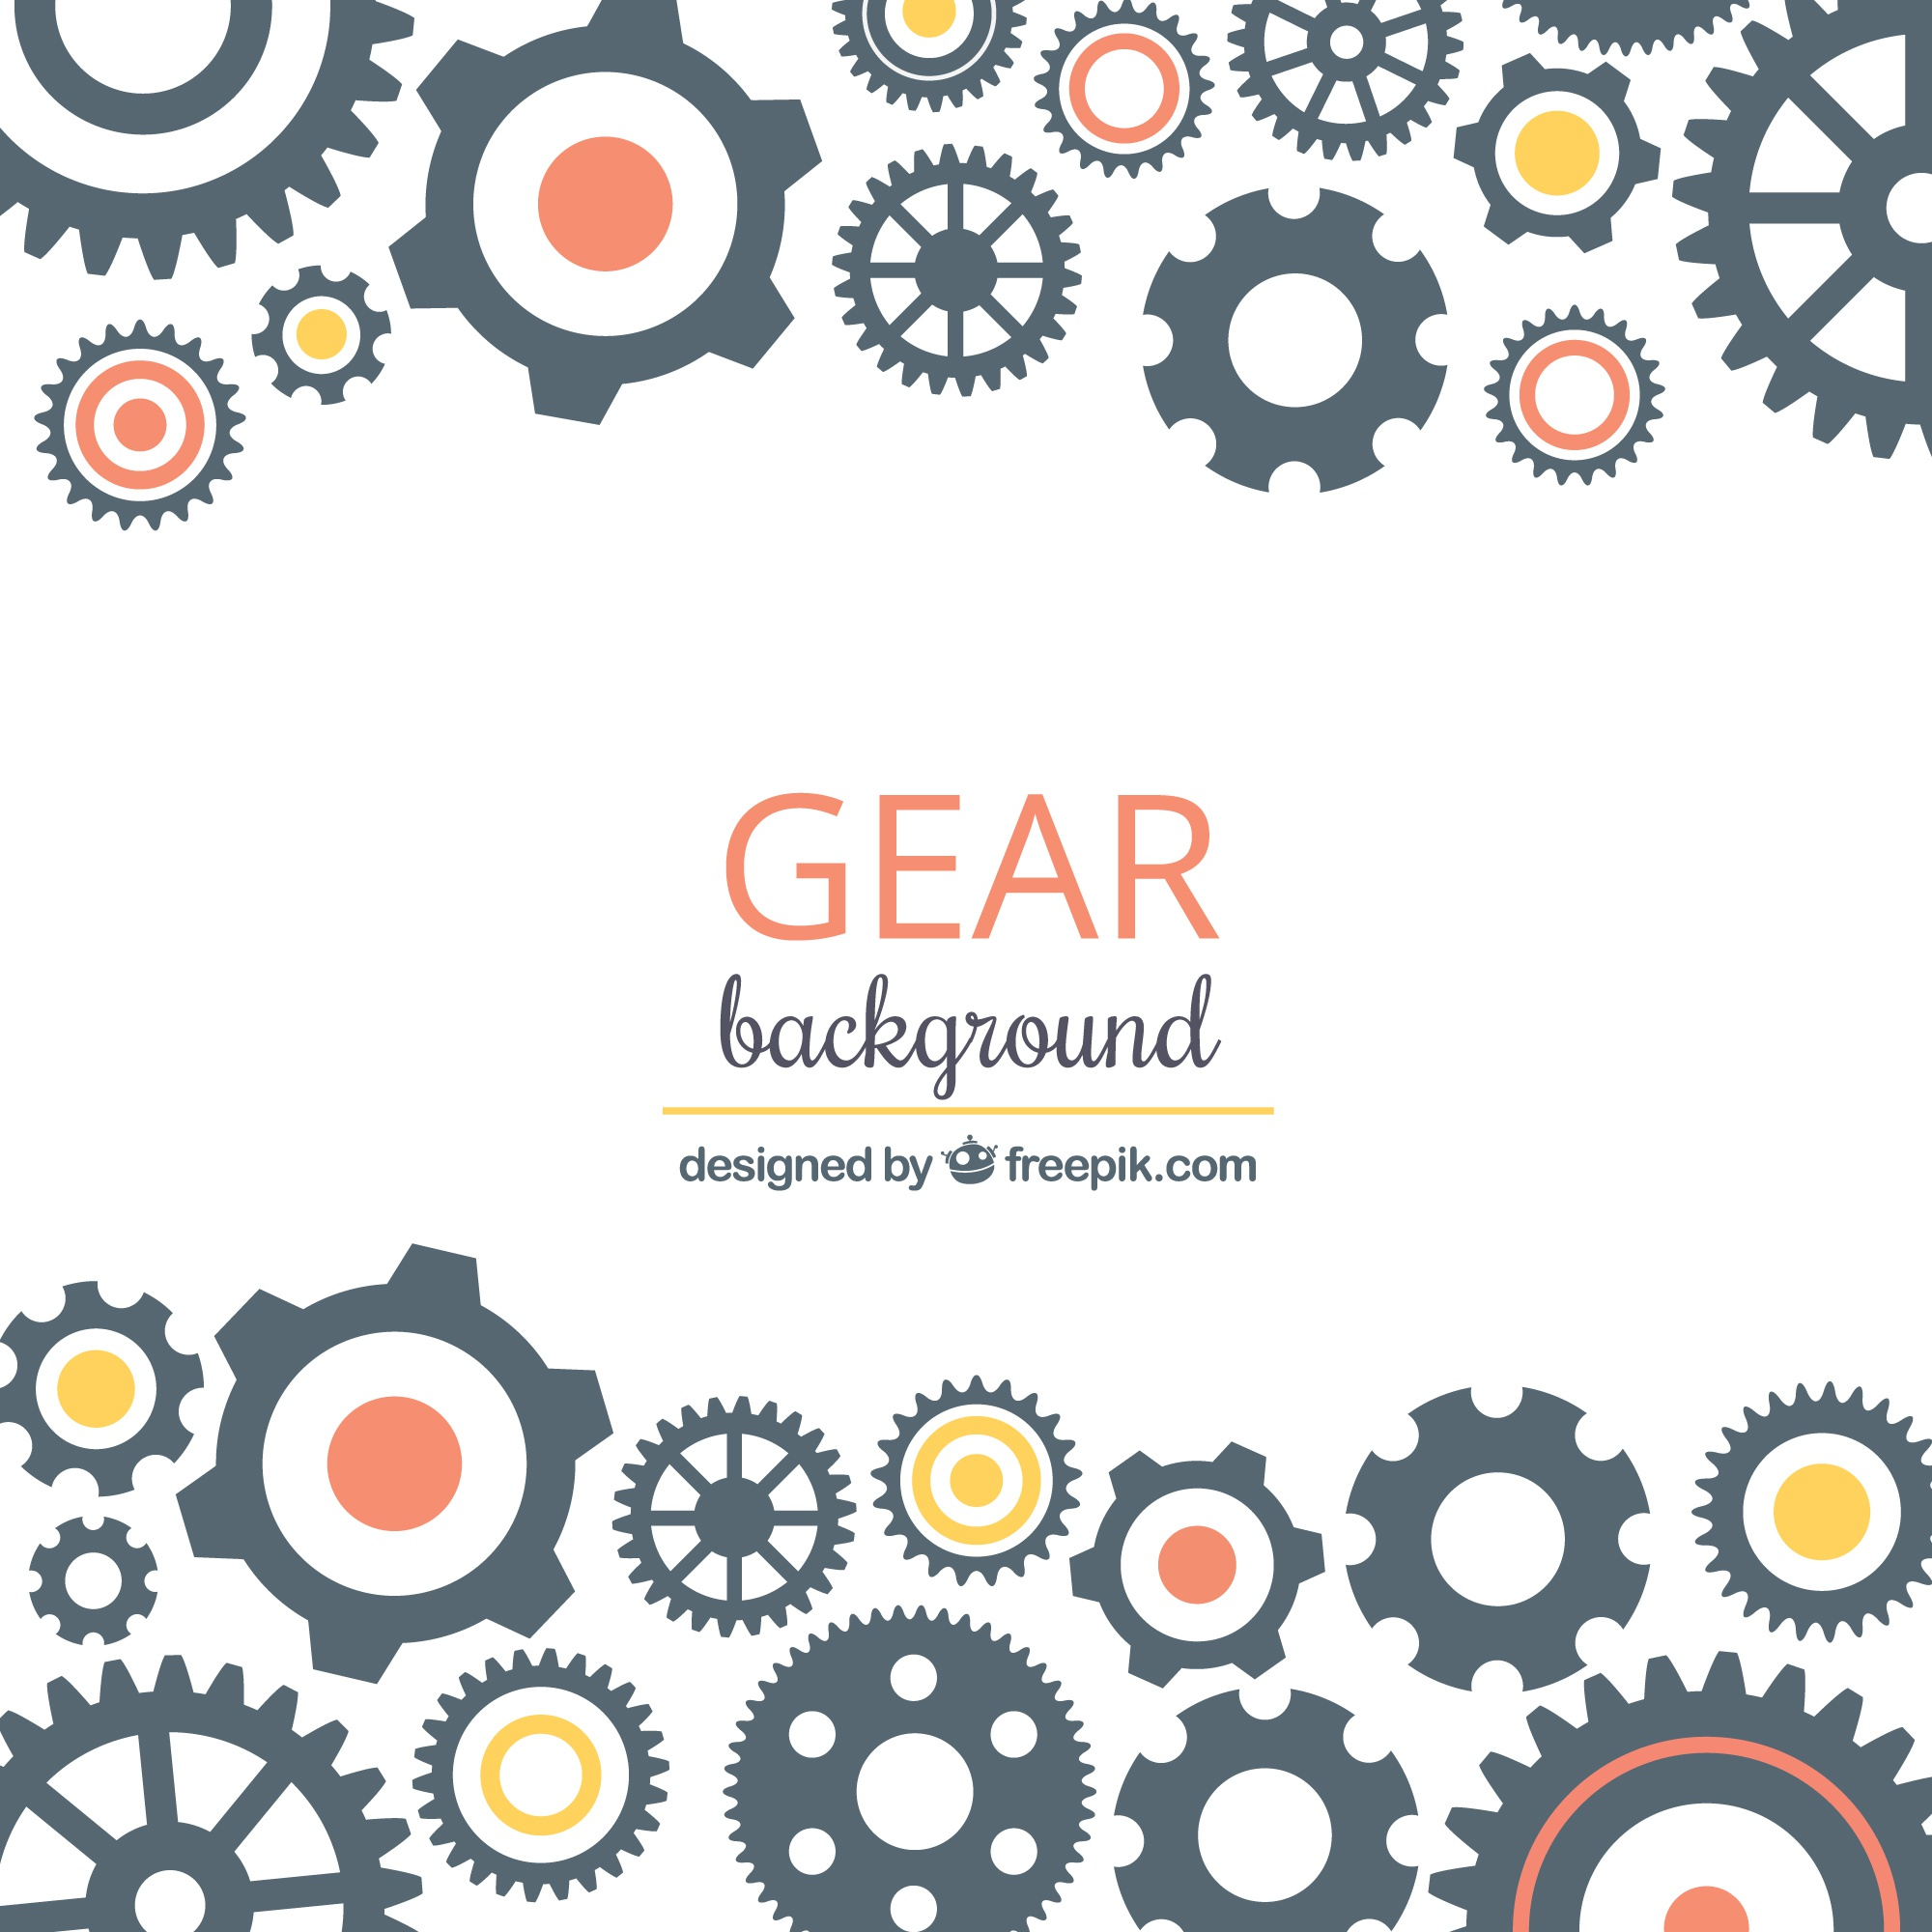 Gear background with circles of different colors